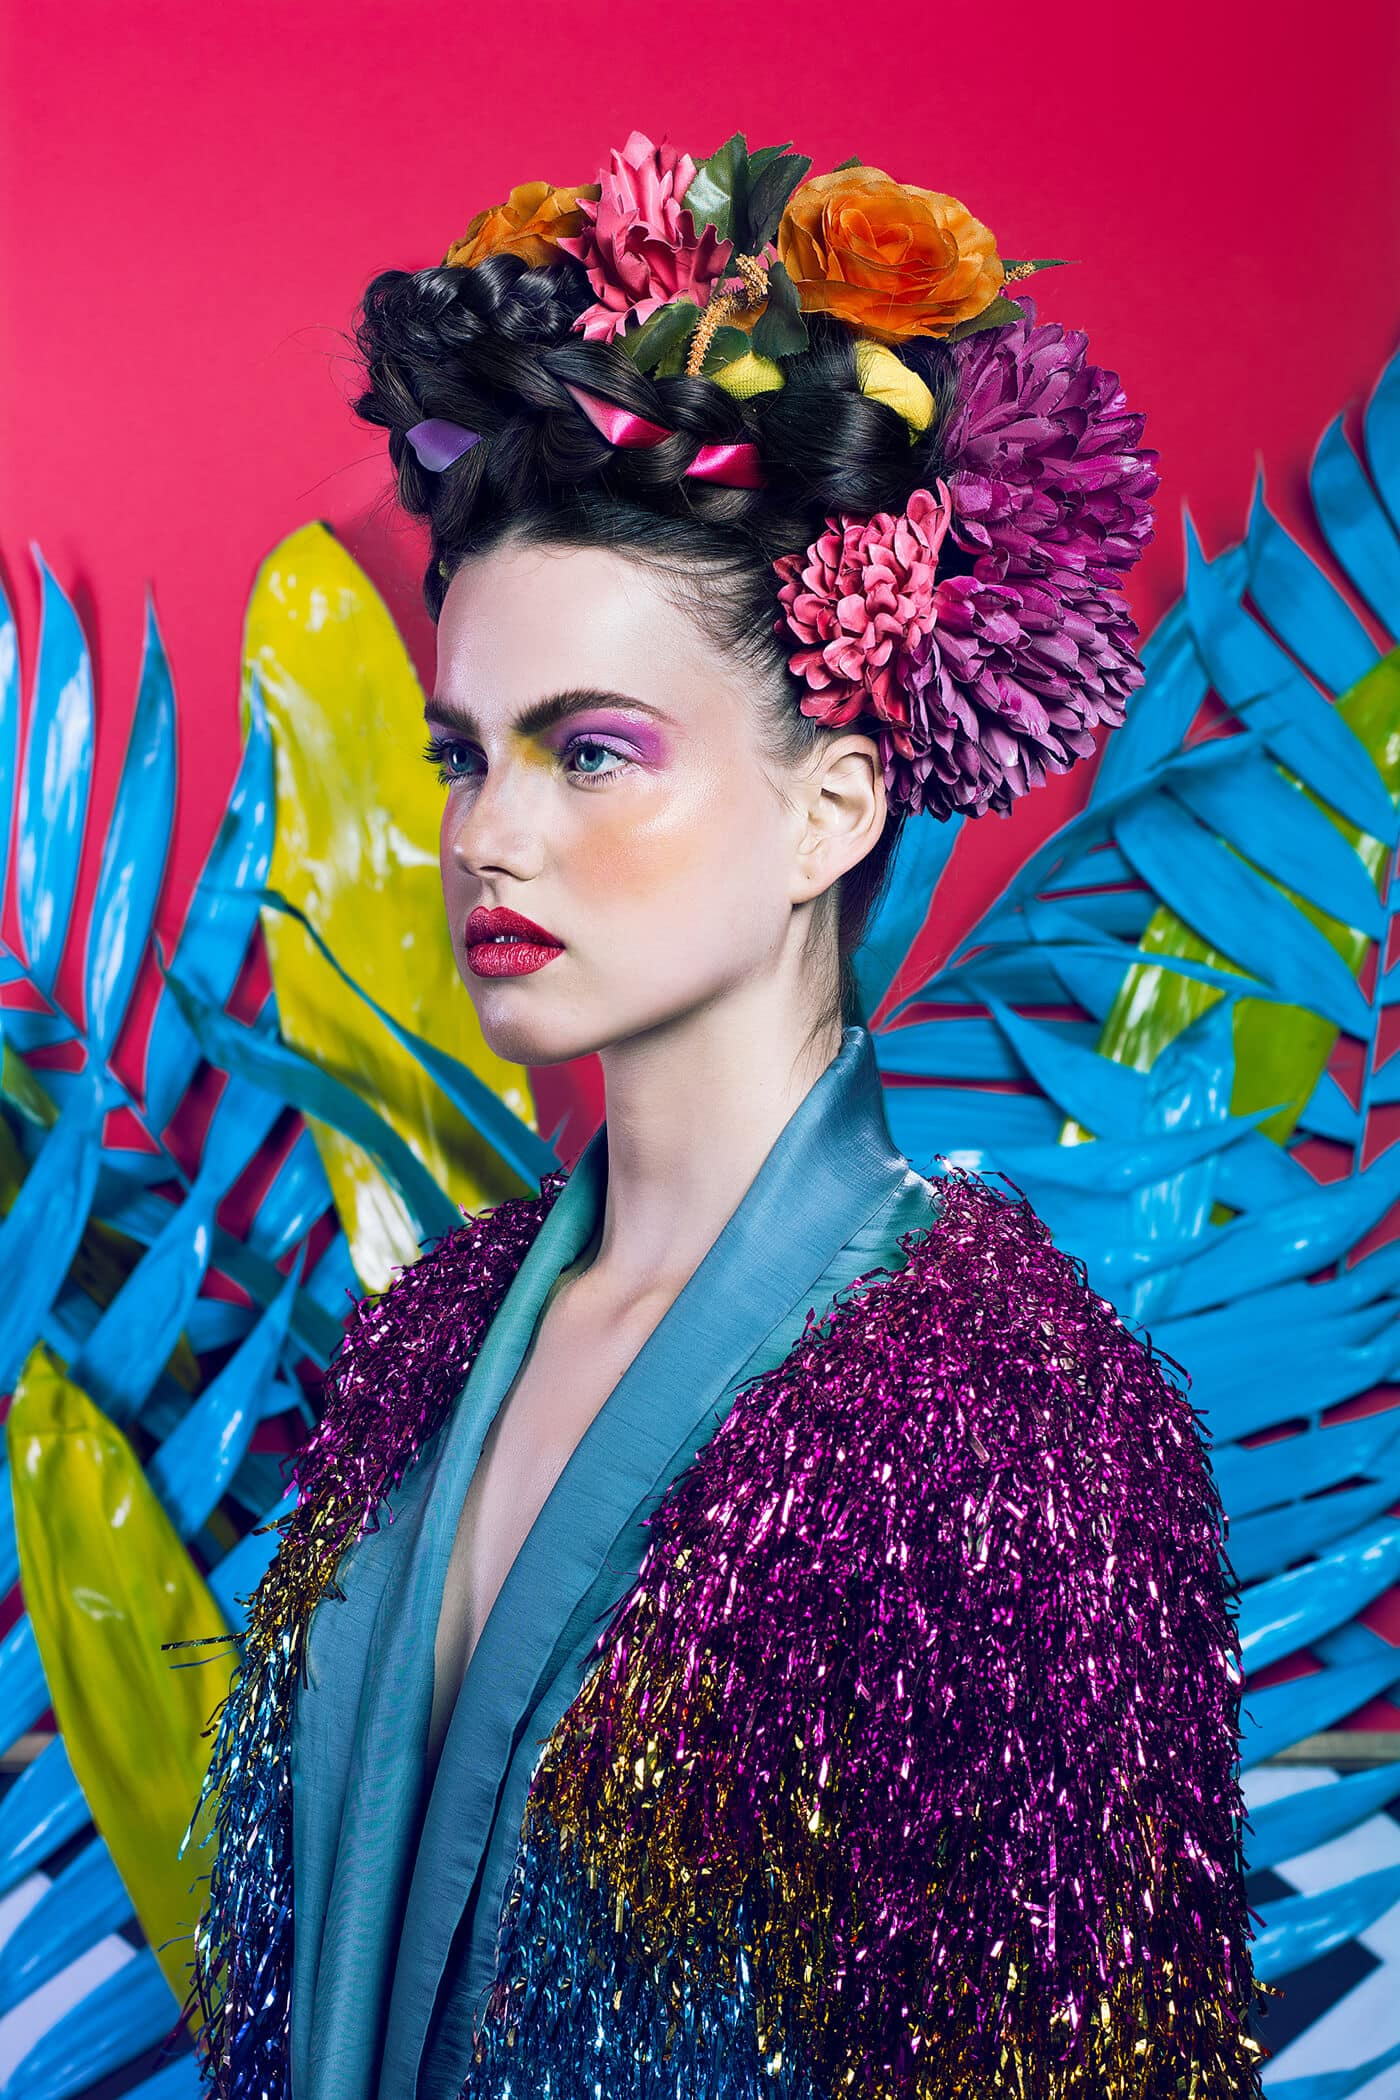 Photographer Reimaged Frida Kahlo As A Modern Fashion Icon in Vibrant Portraits -photo session